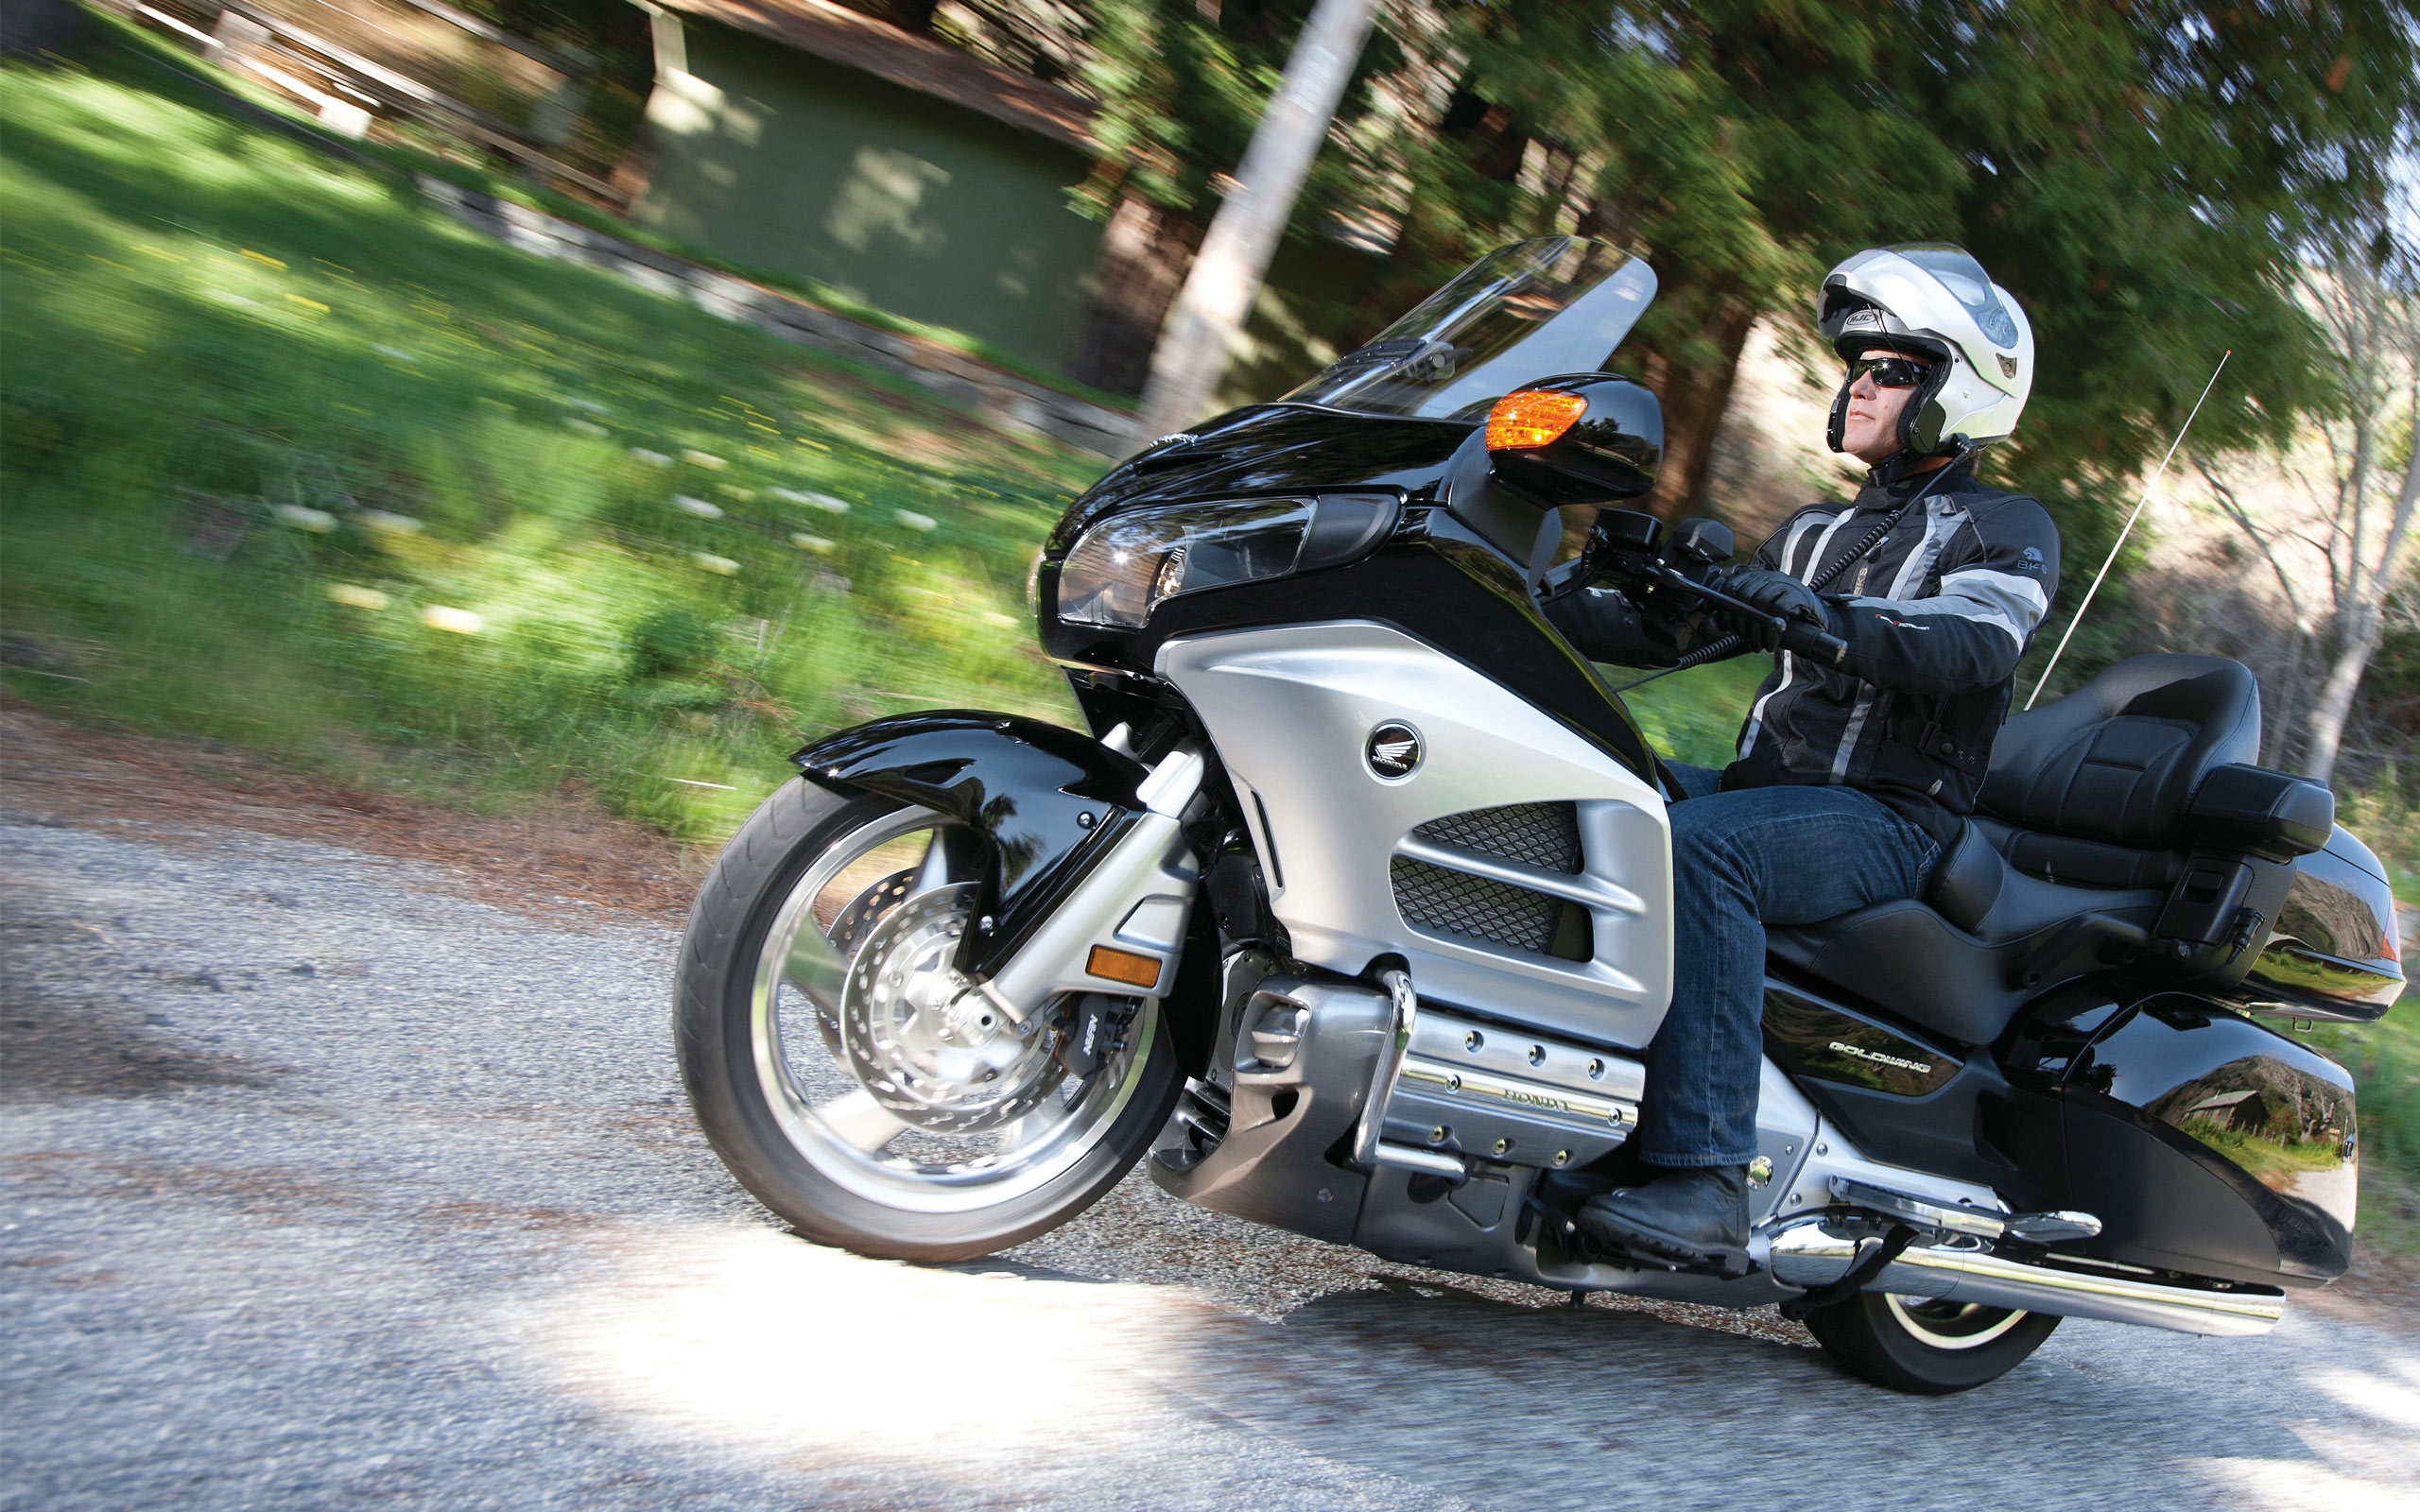 pc wallpaper Honda Goldwing 2560x1600